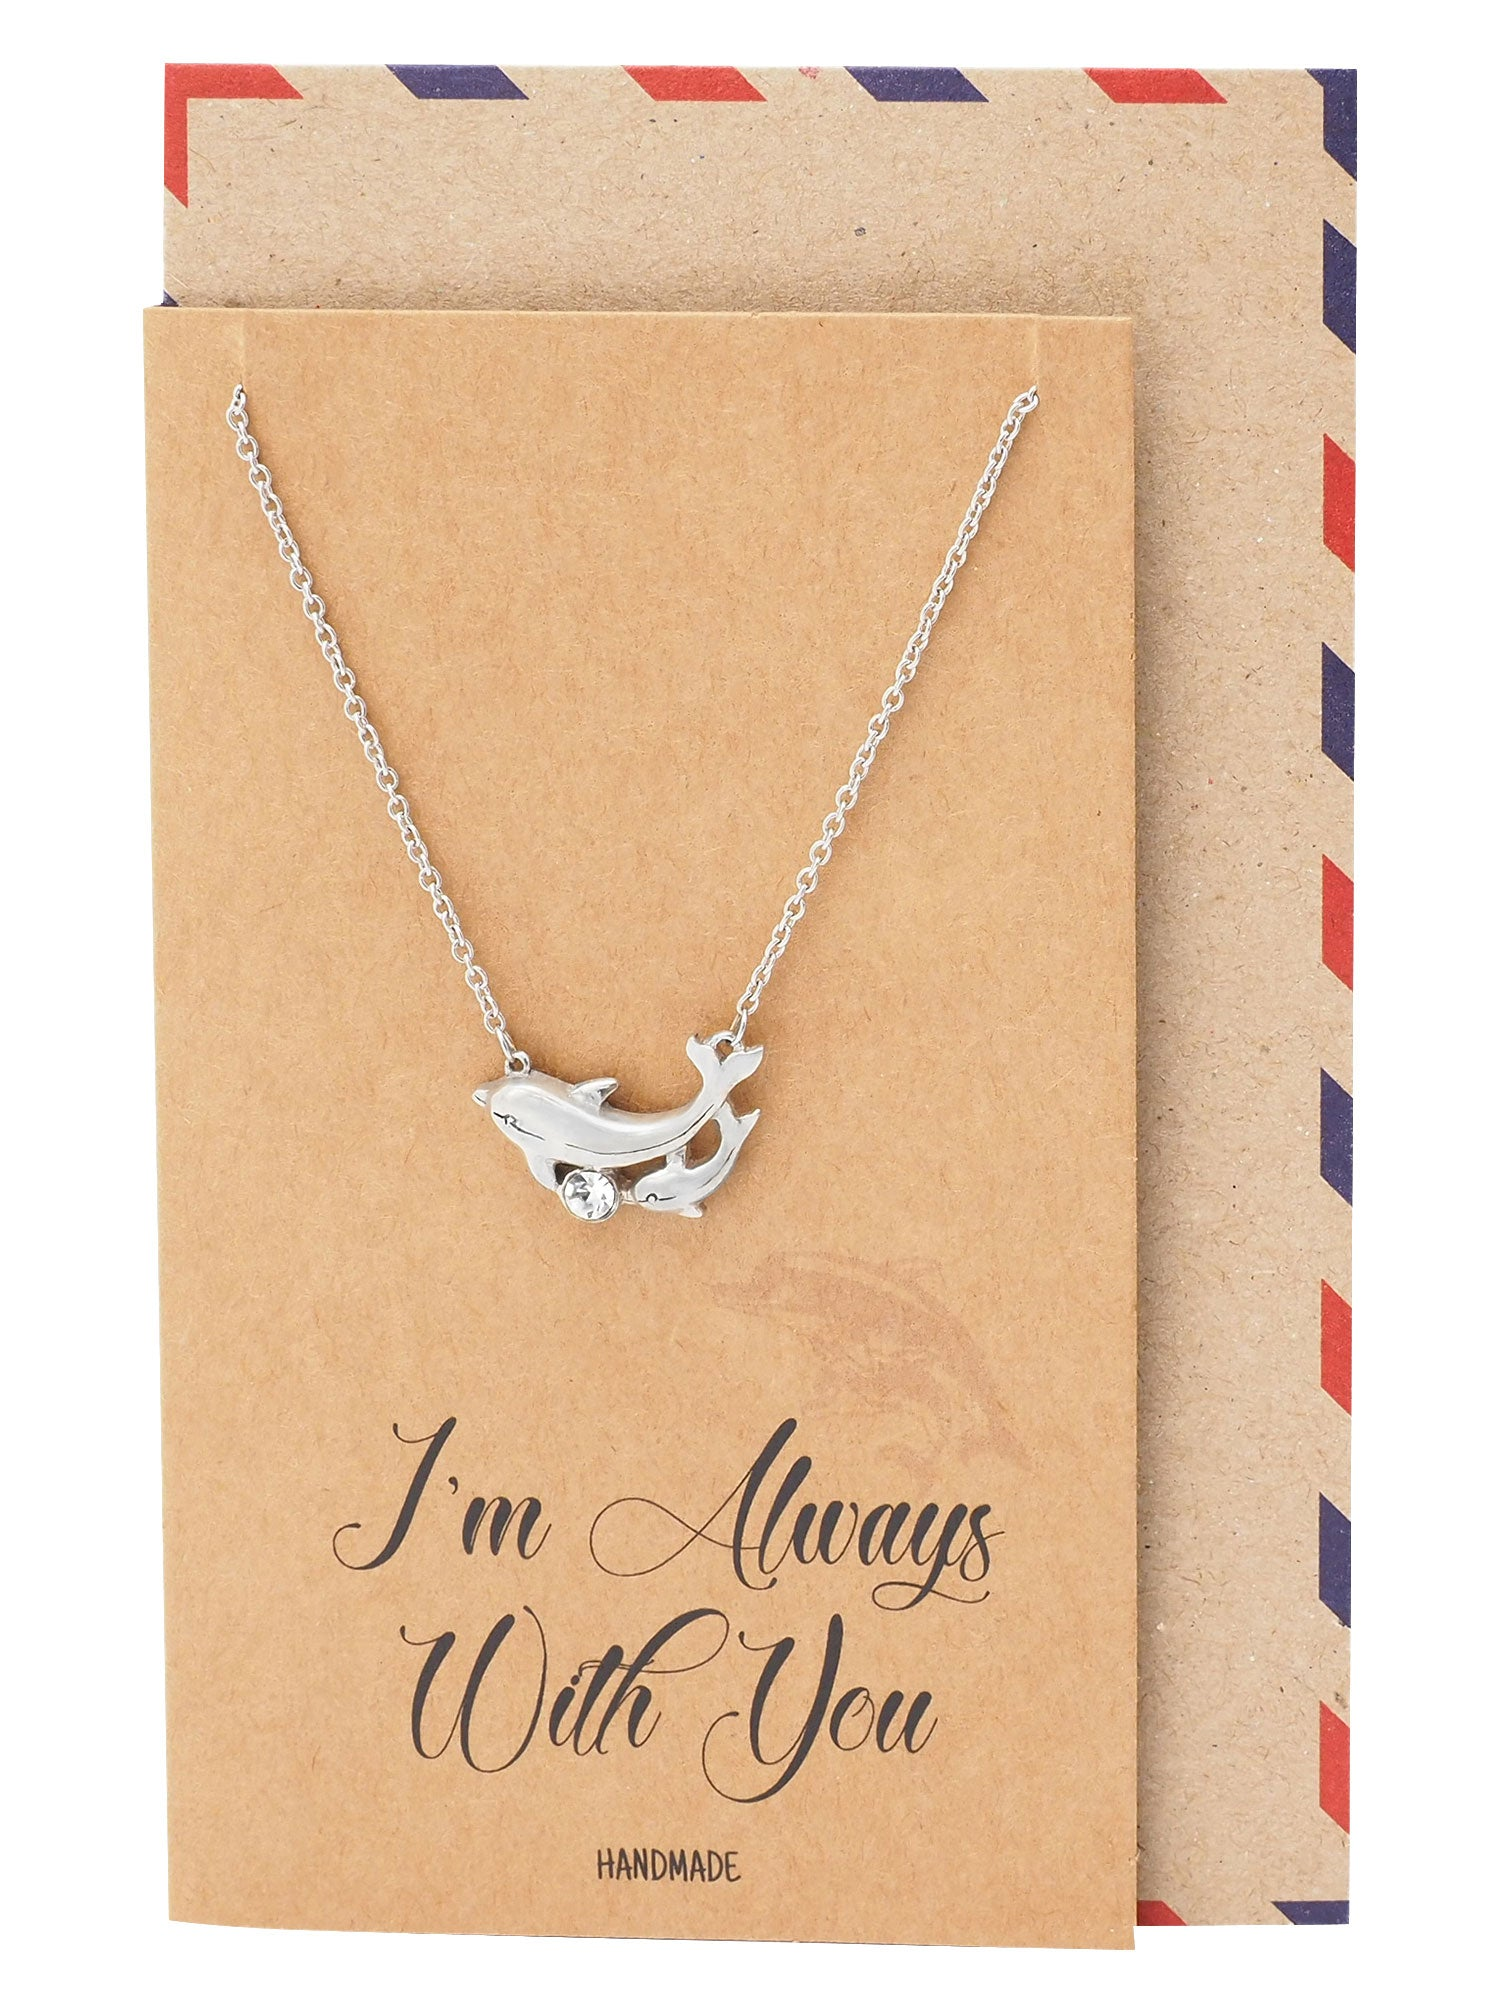 Dazzle Mother Daughter Necklace Dolphin Pendant I'm Always With You Jewelry Greeting Card - Quan Jewelry